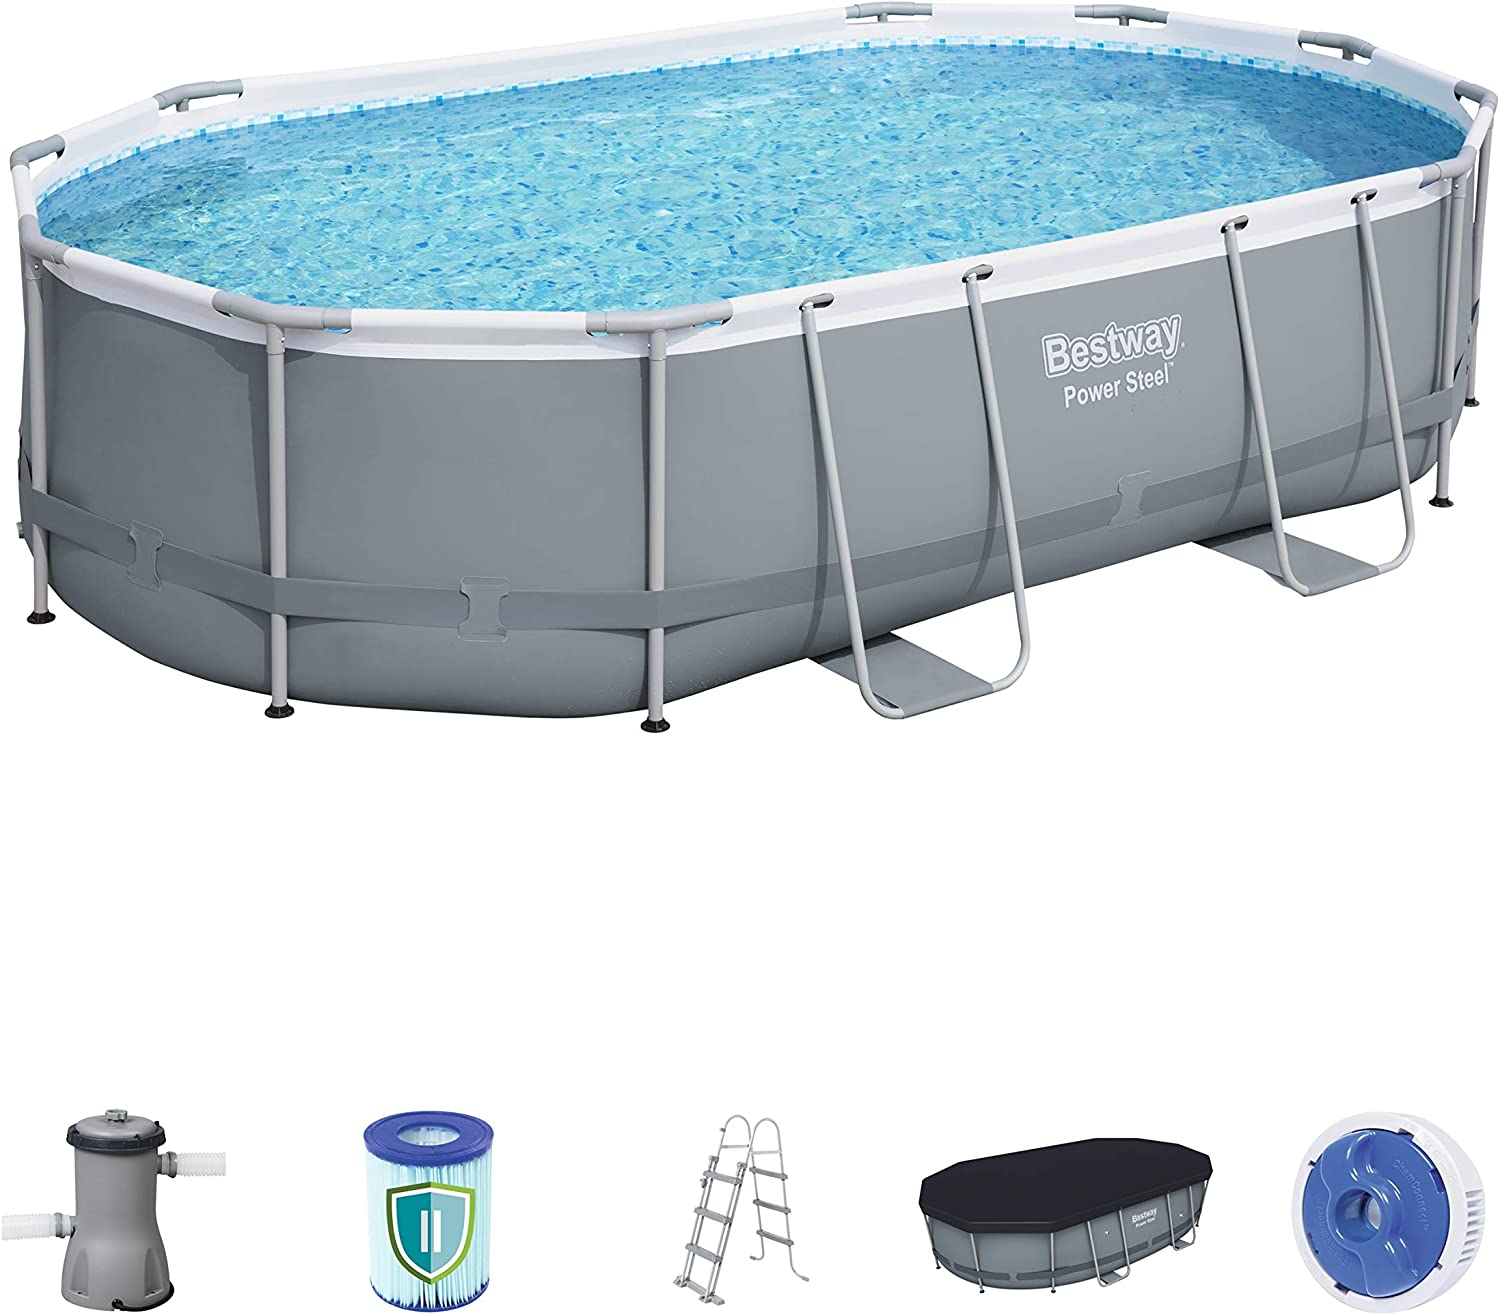 BESTWAY 56448 - Piscina Desmontable Tubular Power Steel Oval 488x305x107 cm Depuradora de cartucho de 3.028 litros/hora: Amazon.es: Jardín